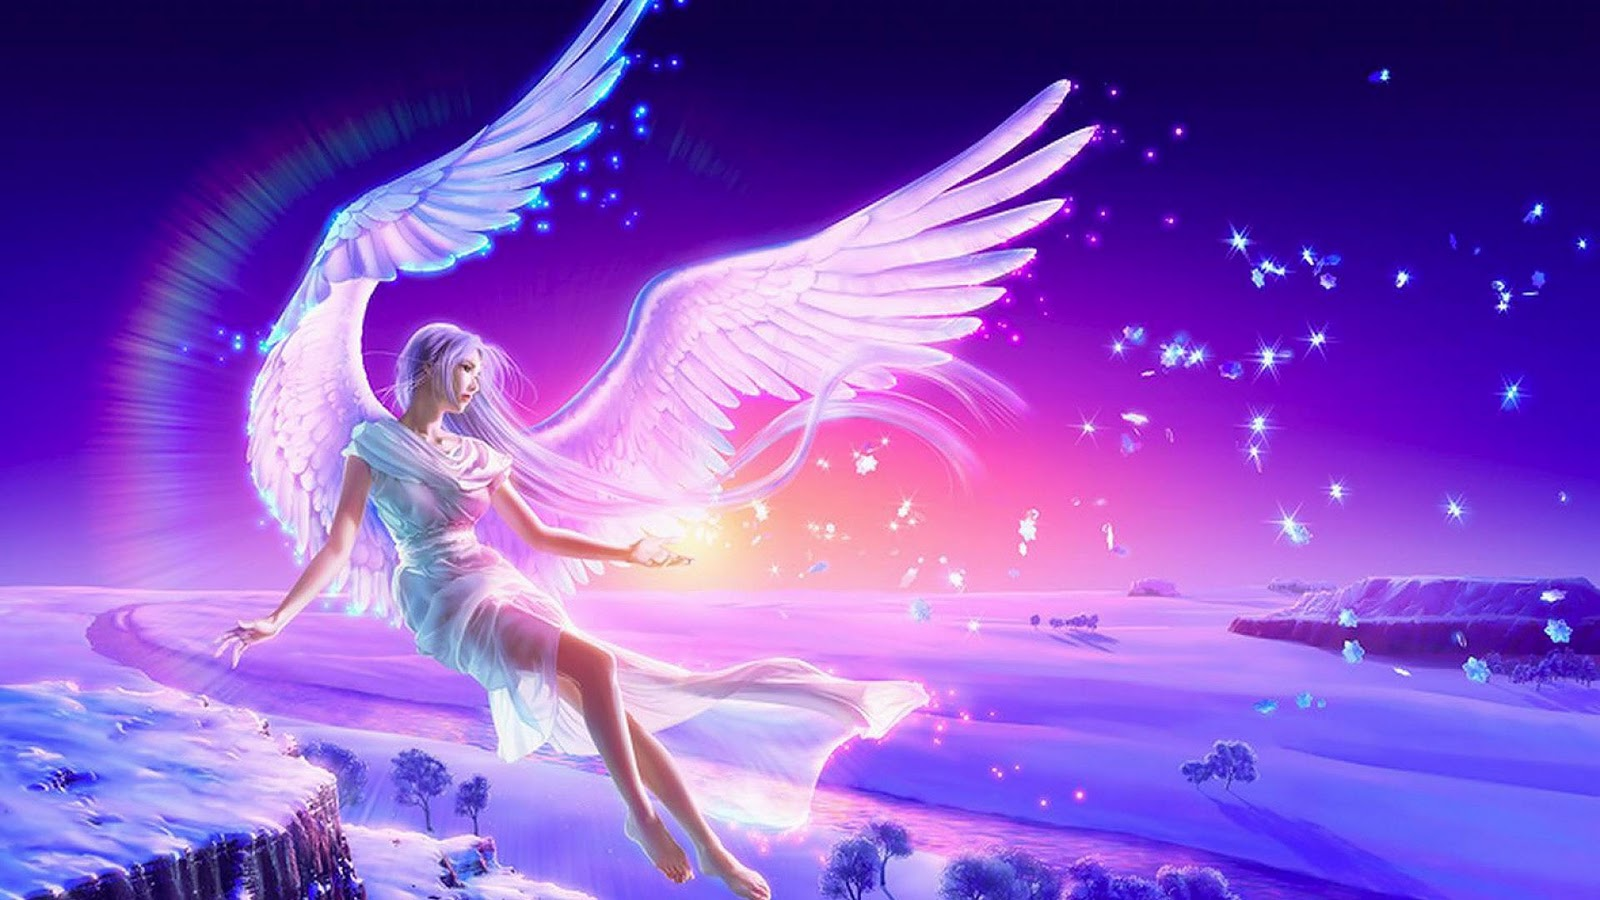 Hd Backgroumds: Best Wallpaper Collection: Best Angel Wallpapers